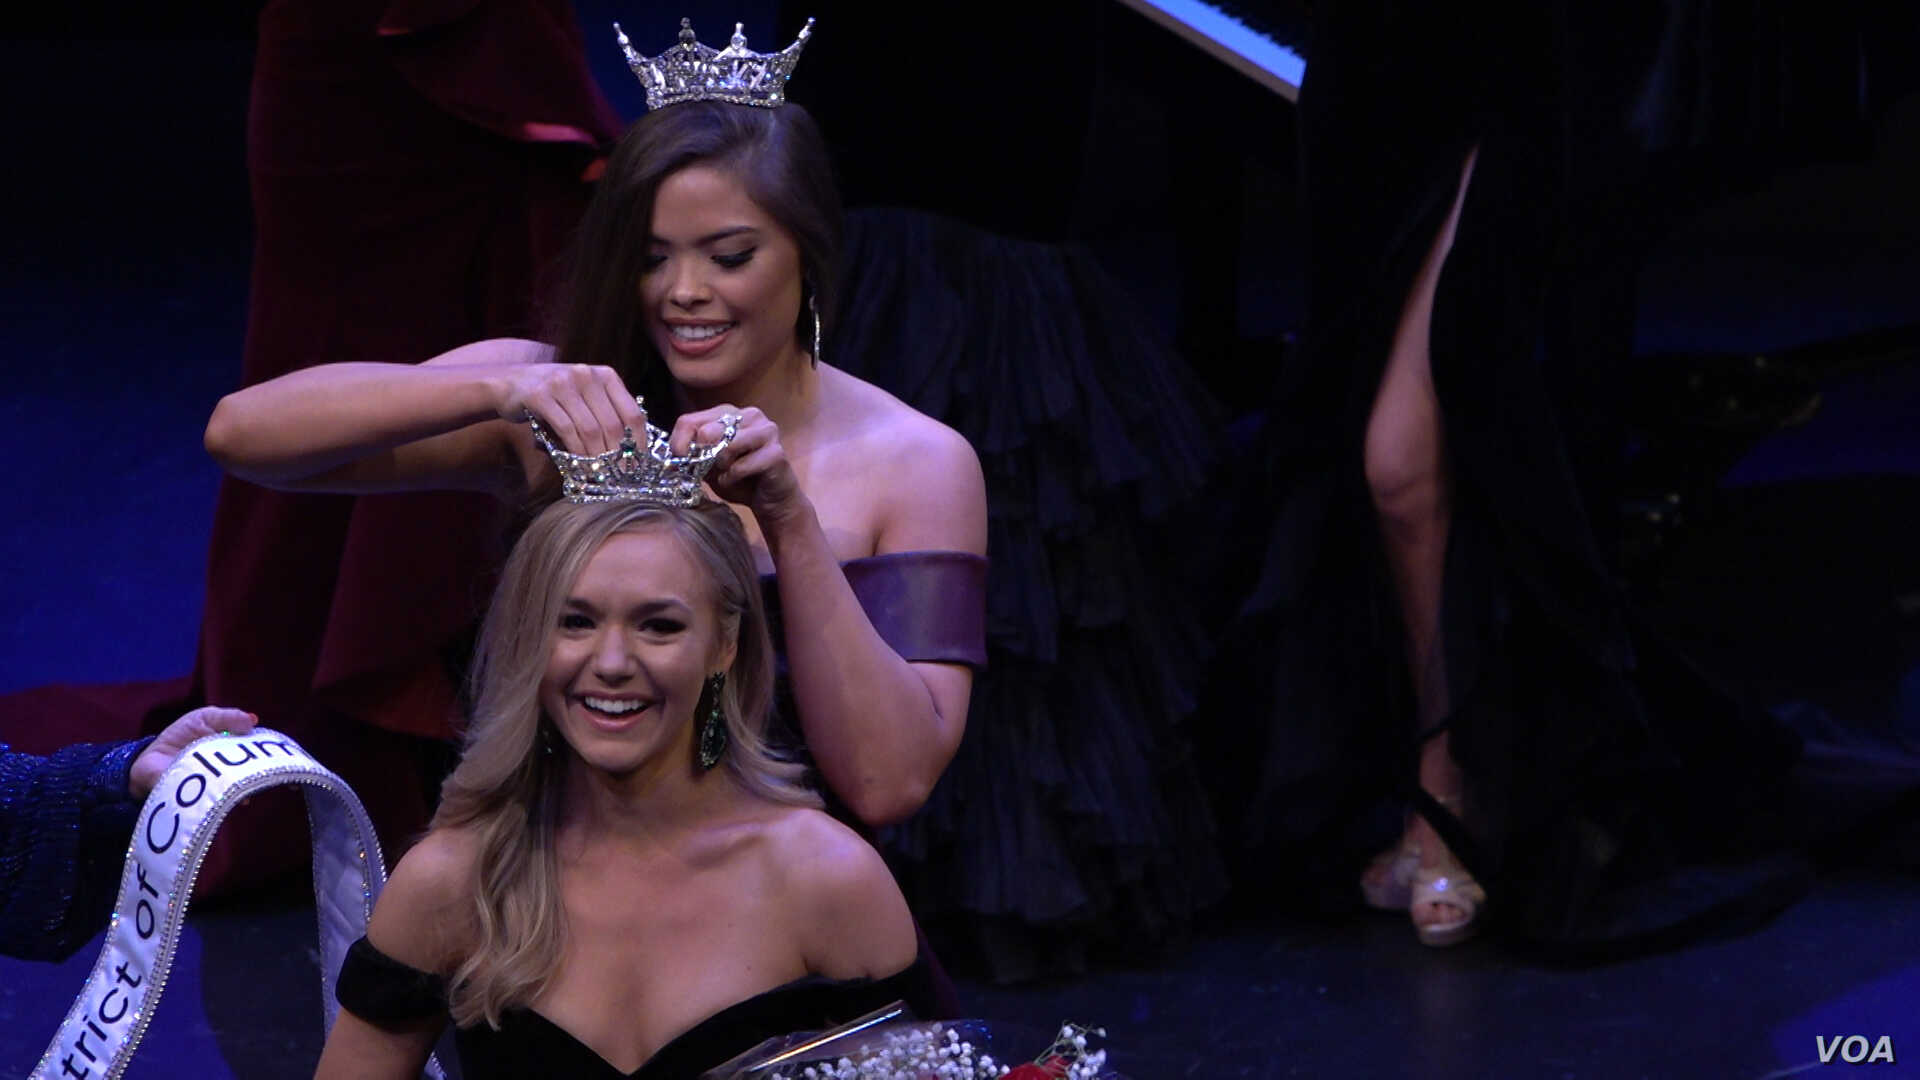 2018 Miss DC Allison Farris handing over the reign to Miss DC 2019 Katelynne Cox.